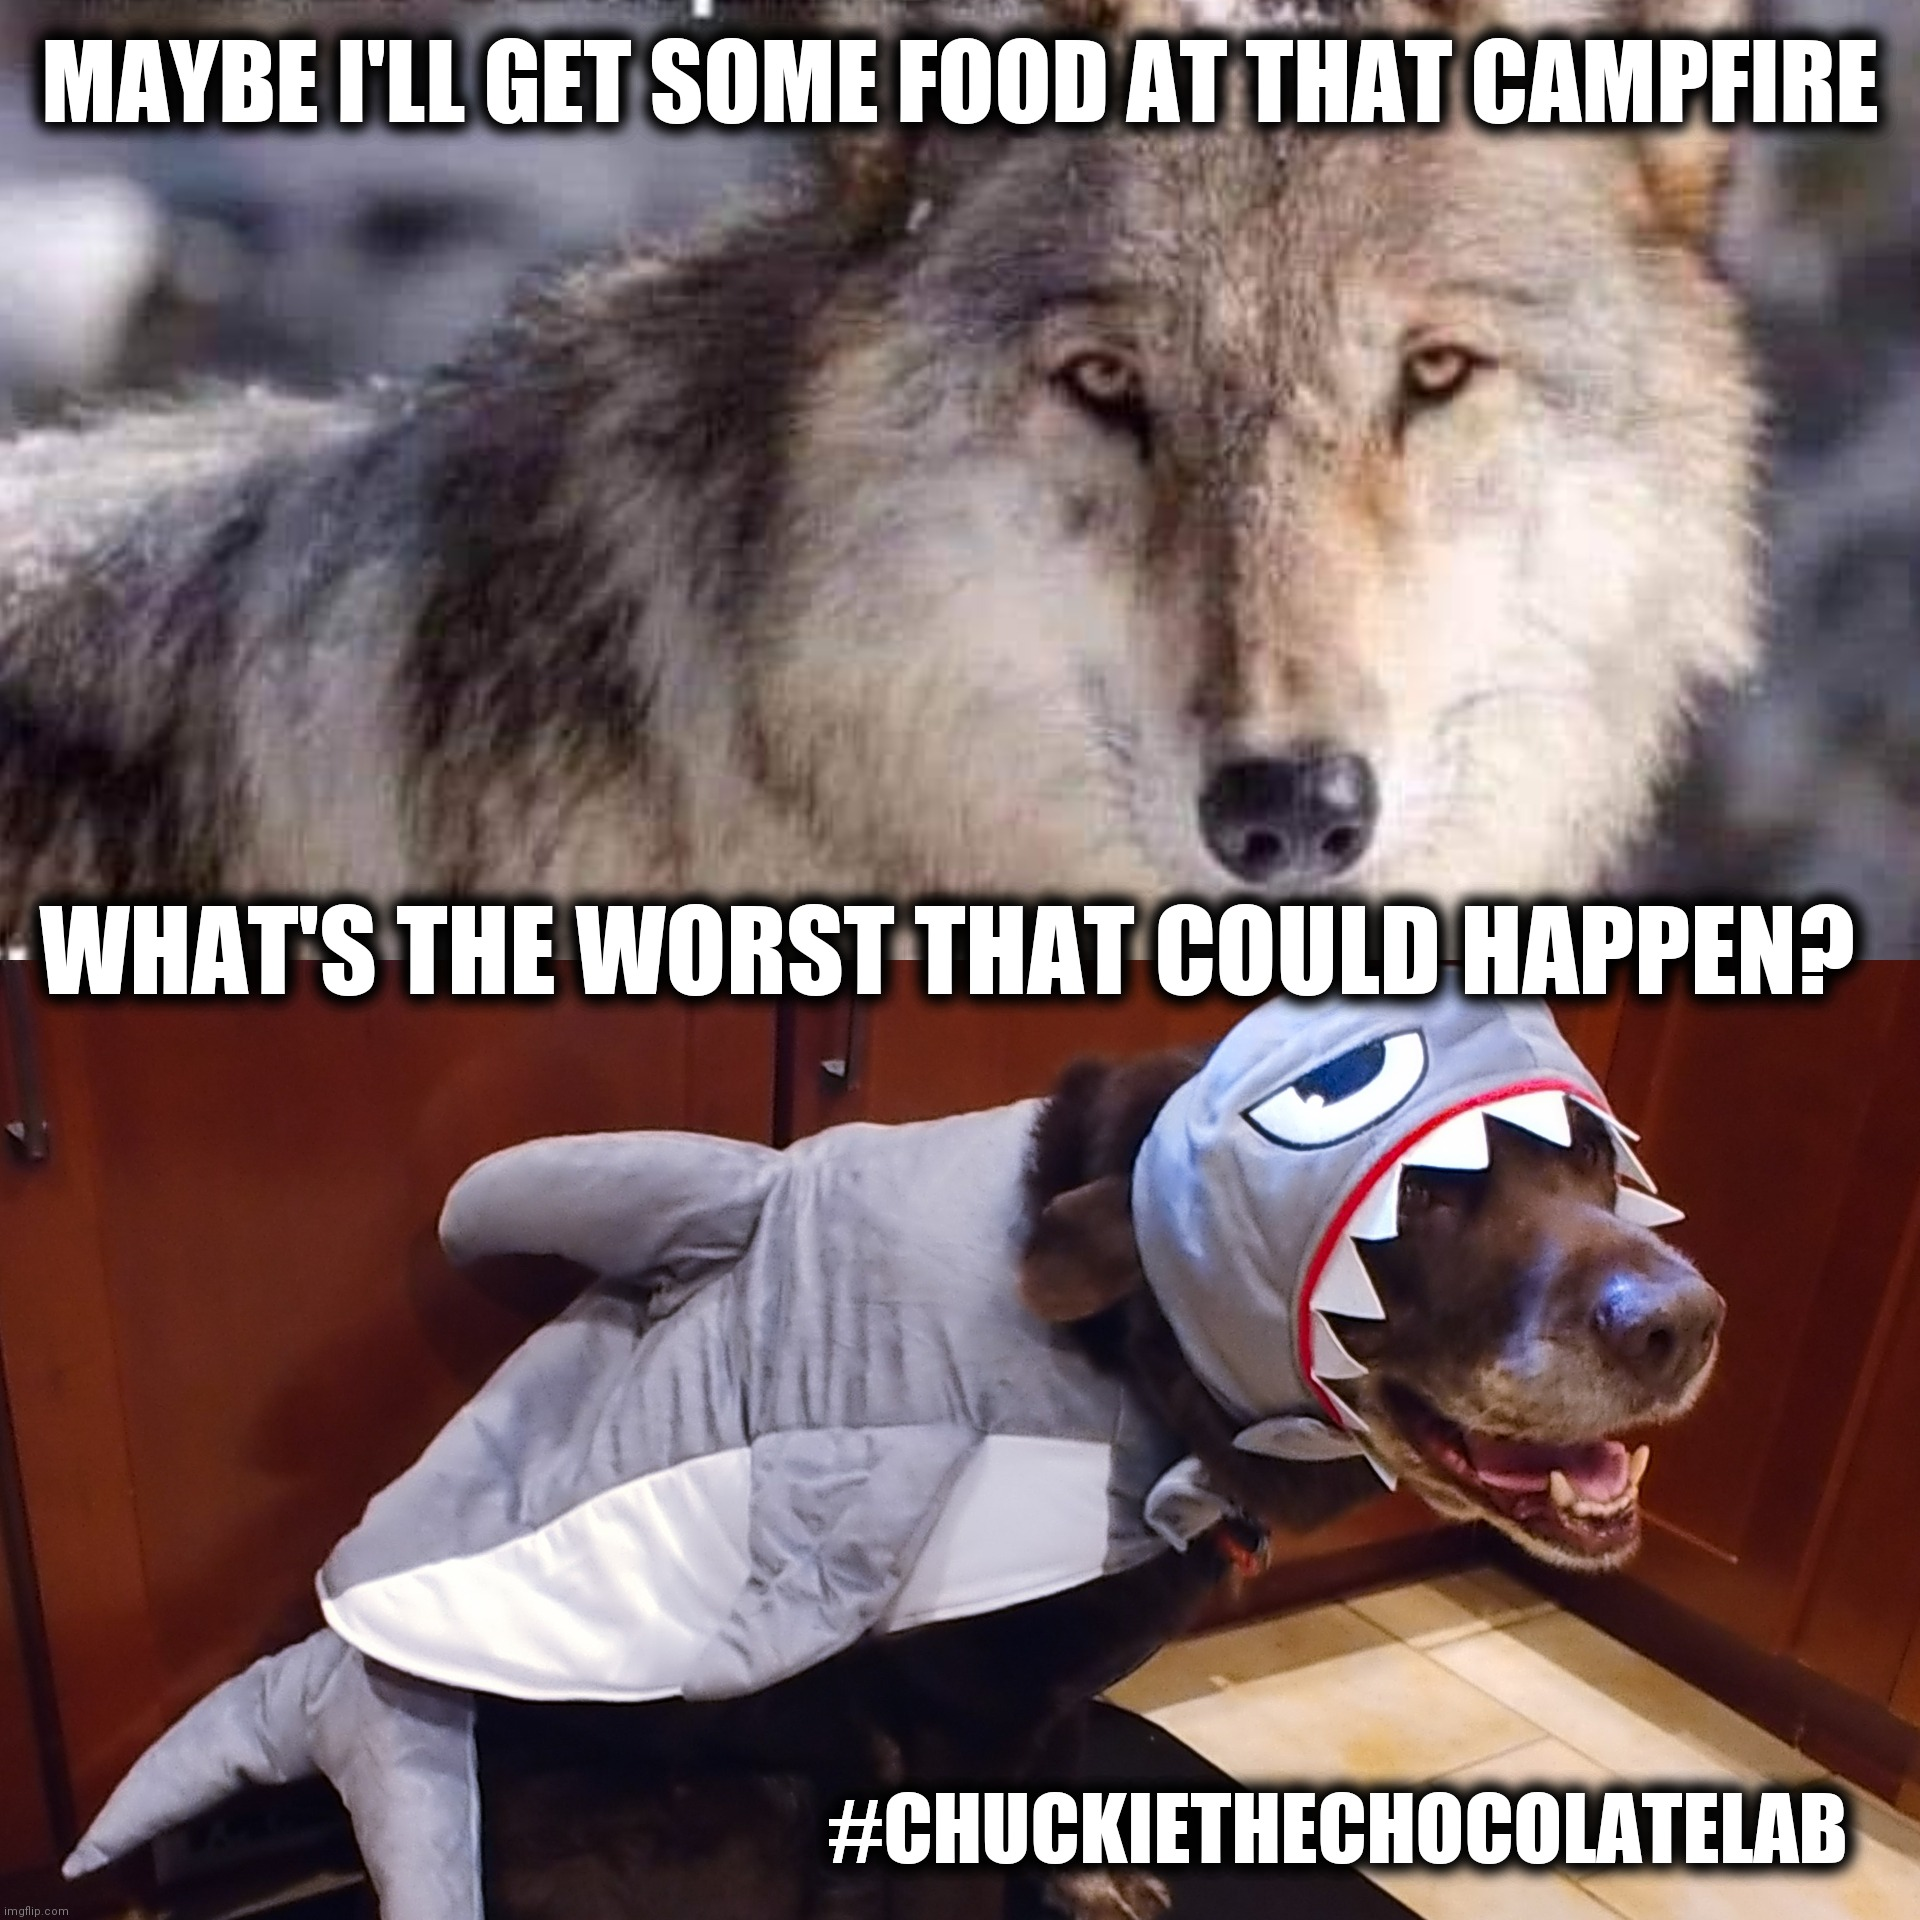 Wolves made their choices |  MAYBE I'LL GET SOME FOOD AT THAT CAMPFIRE; WHAT'S THE WORST THAT COULD HAPPEN? #CHUCKIETHECHOCOLATELAB | image tagged in chuckie the chocolate lab,wolves,funny,halloween,memes,dogs | made w/ Imgflip meme maker